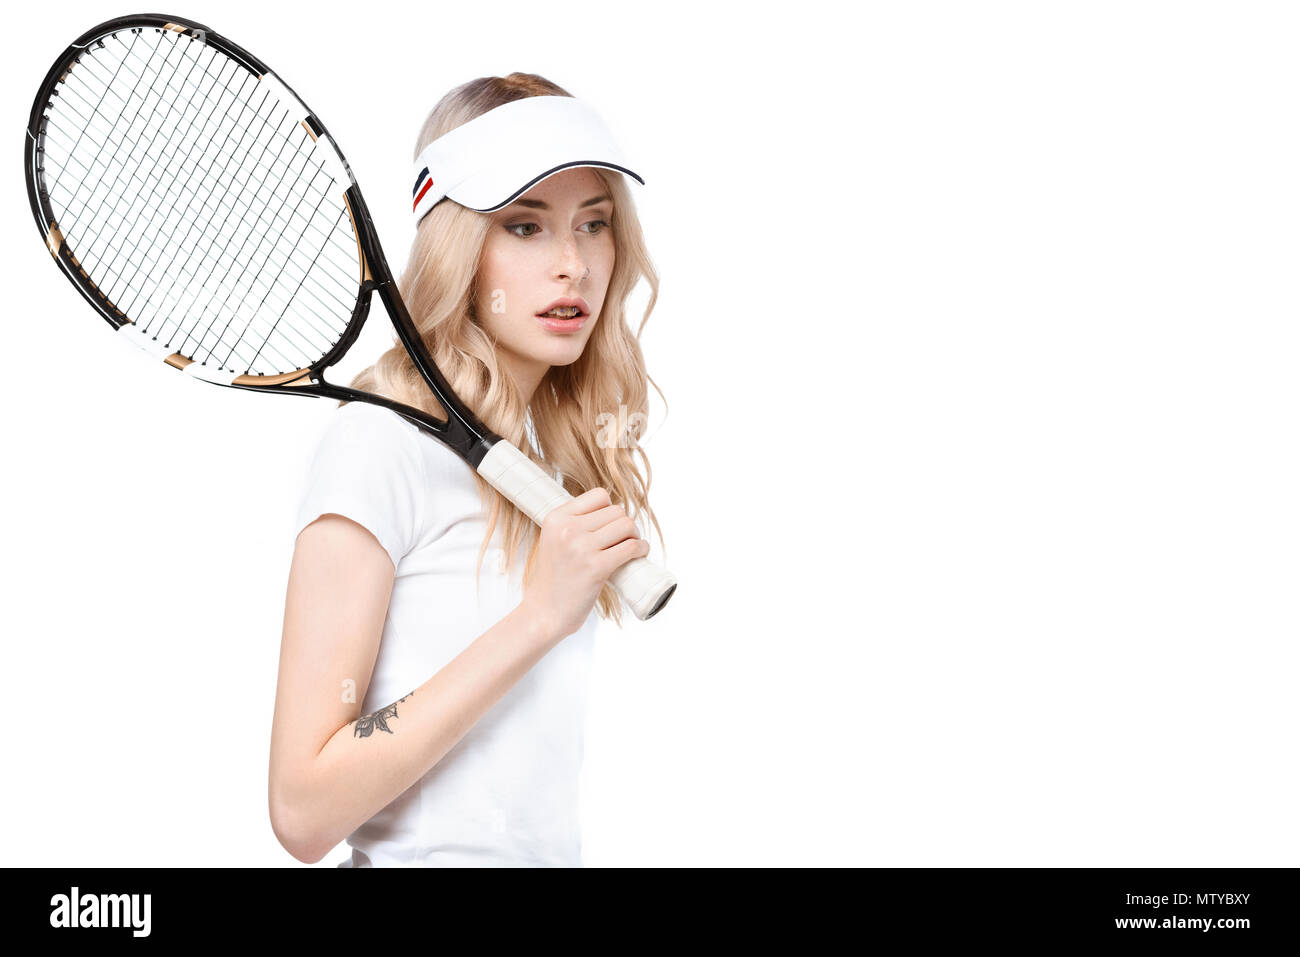 Half-length shot of a young woman with a tennis racket. - Stock Image